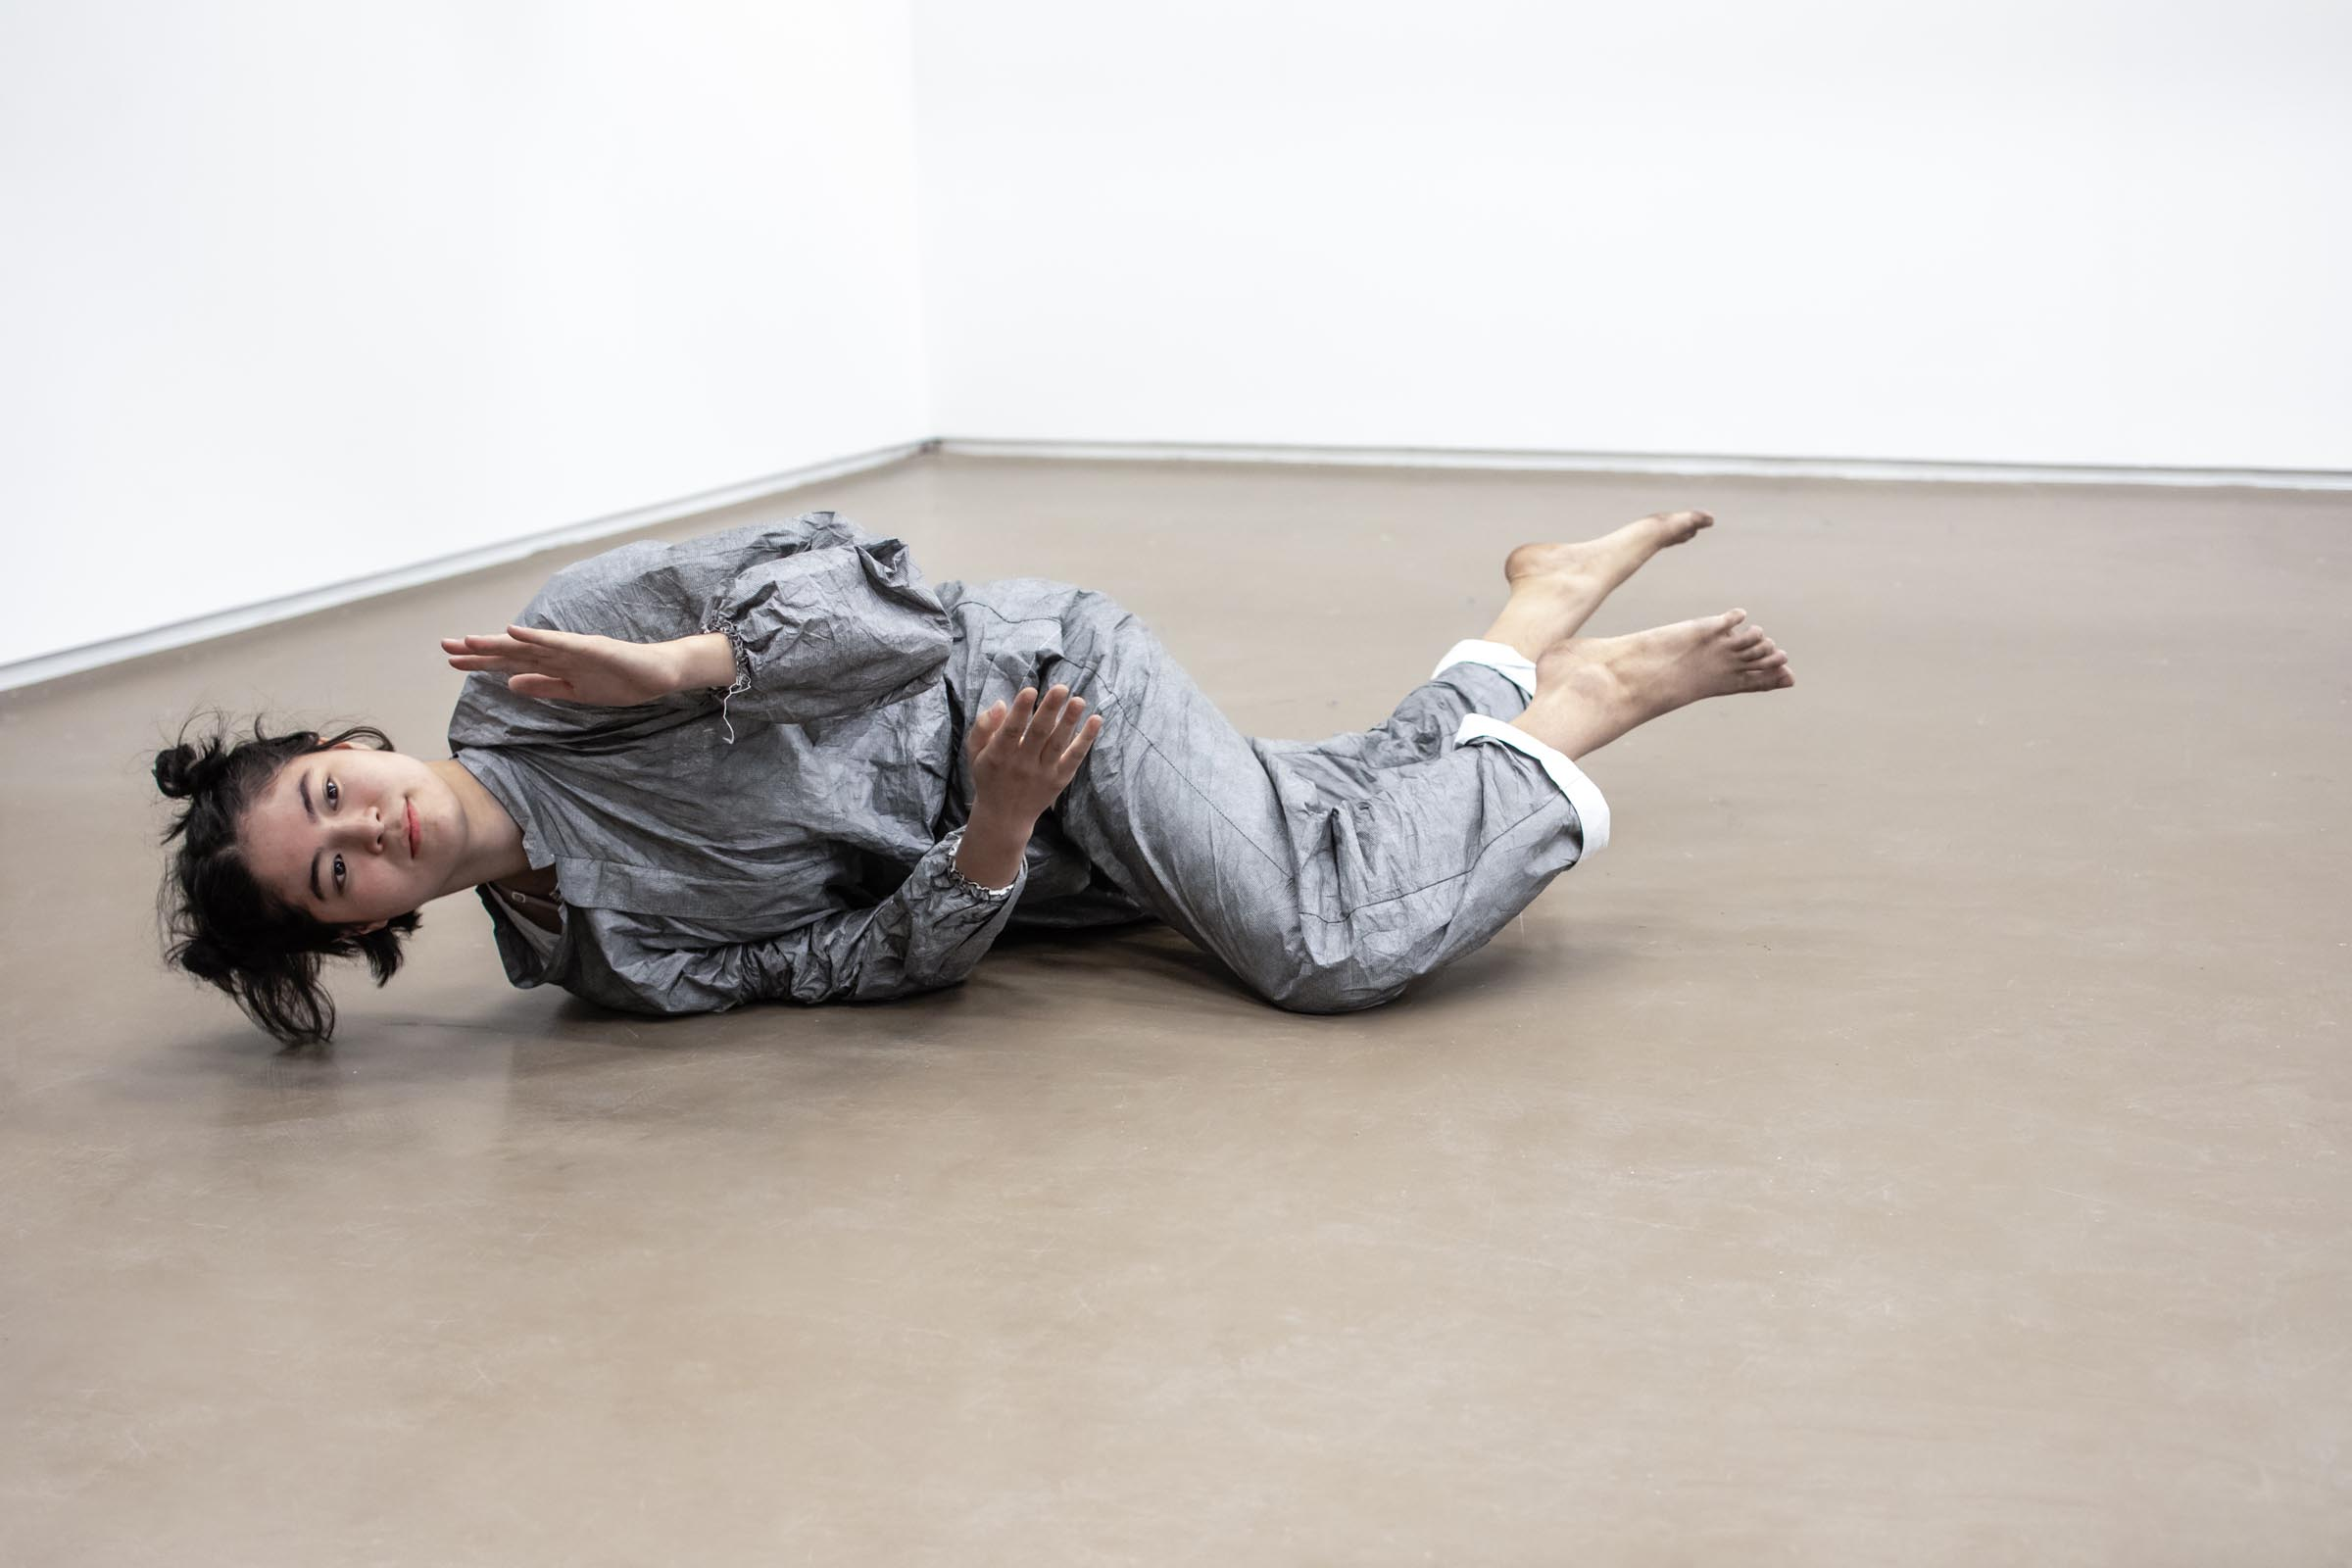 Elena Bajo (USA/ES) is an artist, choreographer and cofounder of the LA collective D'CLUB dedicated to climate action.